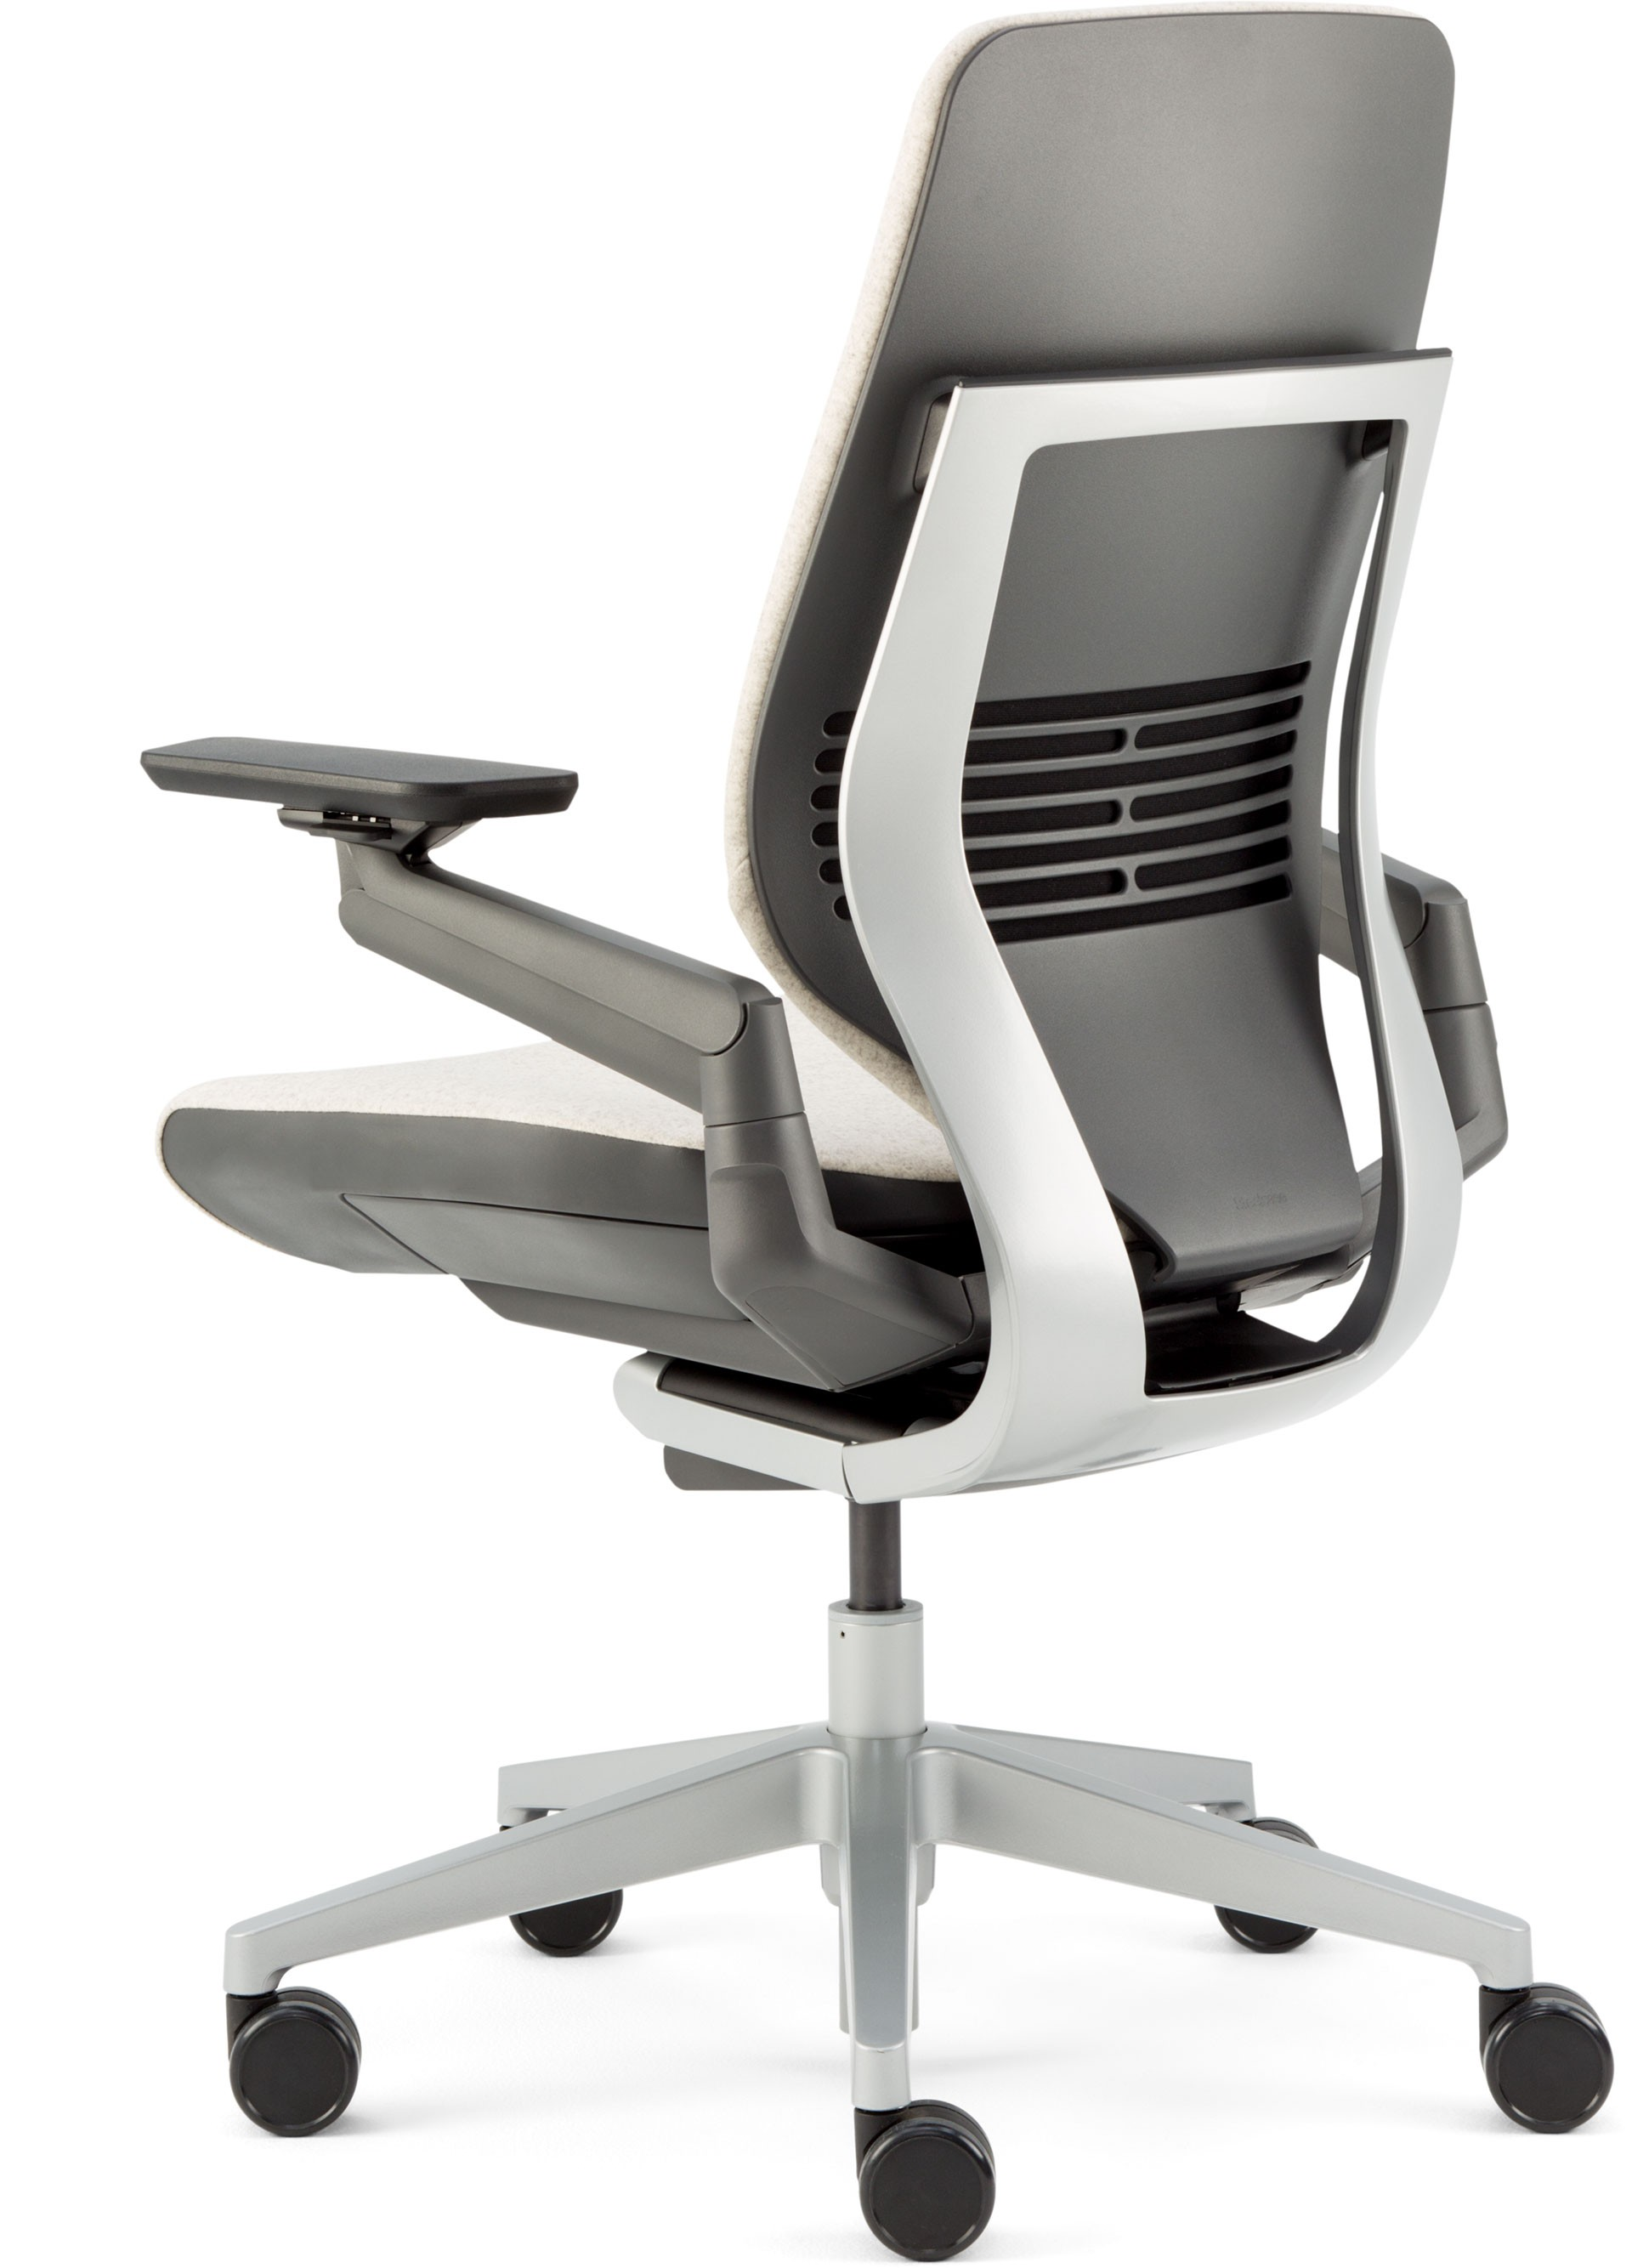 07 moreover Steelcase Gesture Office Chair together with Pill Top Chair besides JL S307Pedicure Chair Foot Leg Rest 60389159849 in addition Mobile Flipchart Easel. on height adjustable high chair